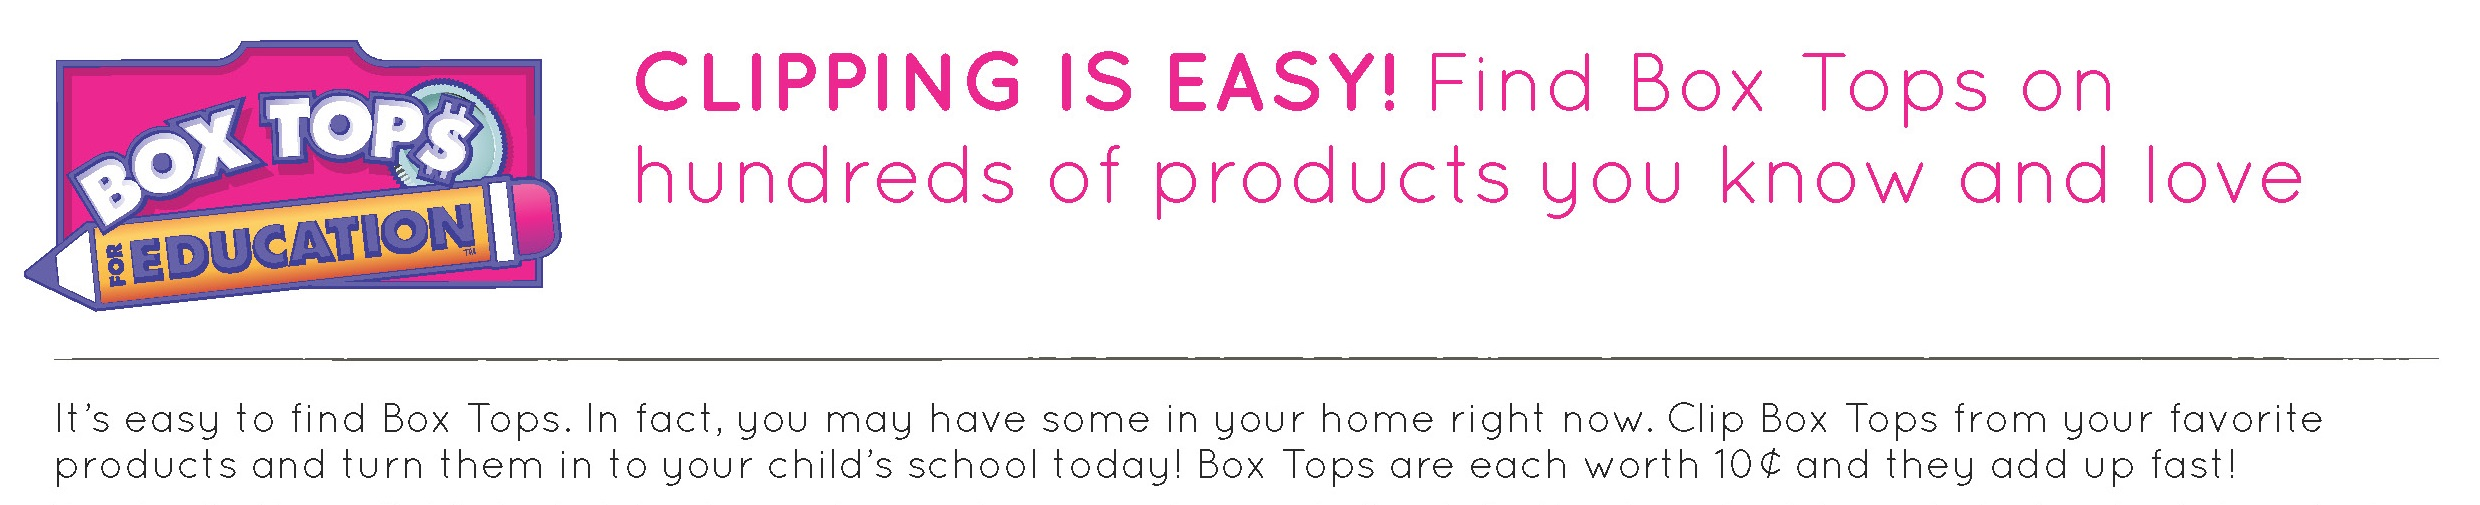 Boxtops for education information banner